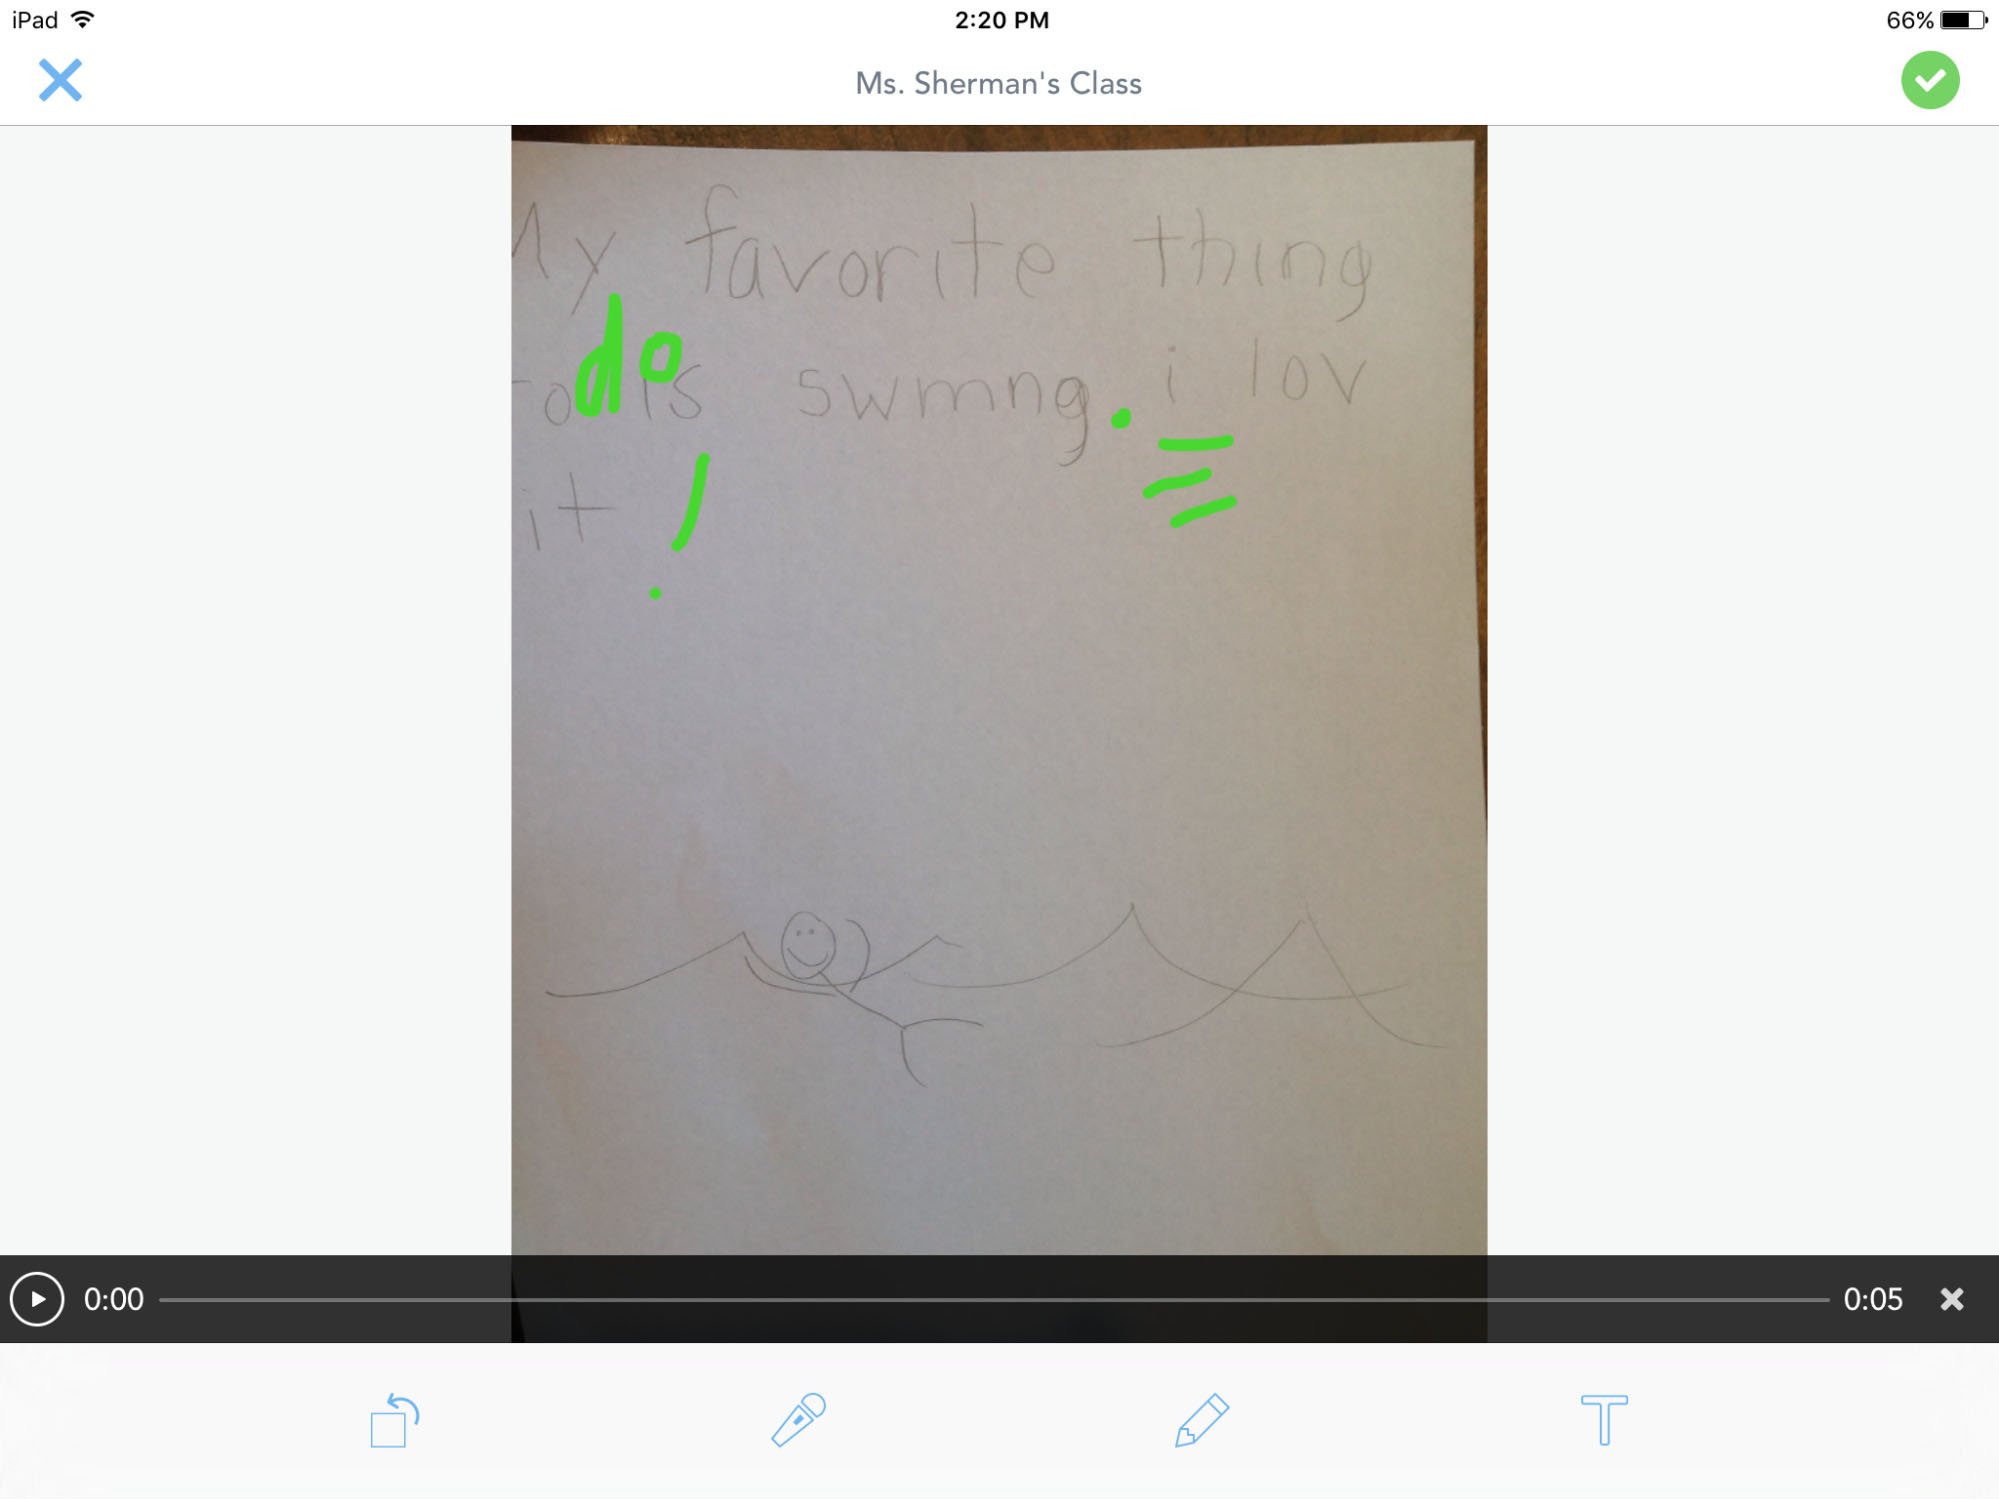 a story written on paper with ipad annotations on it